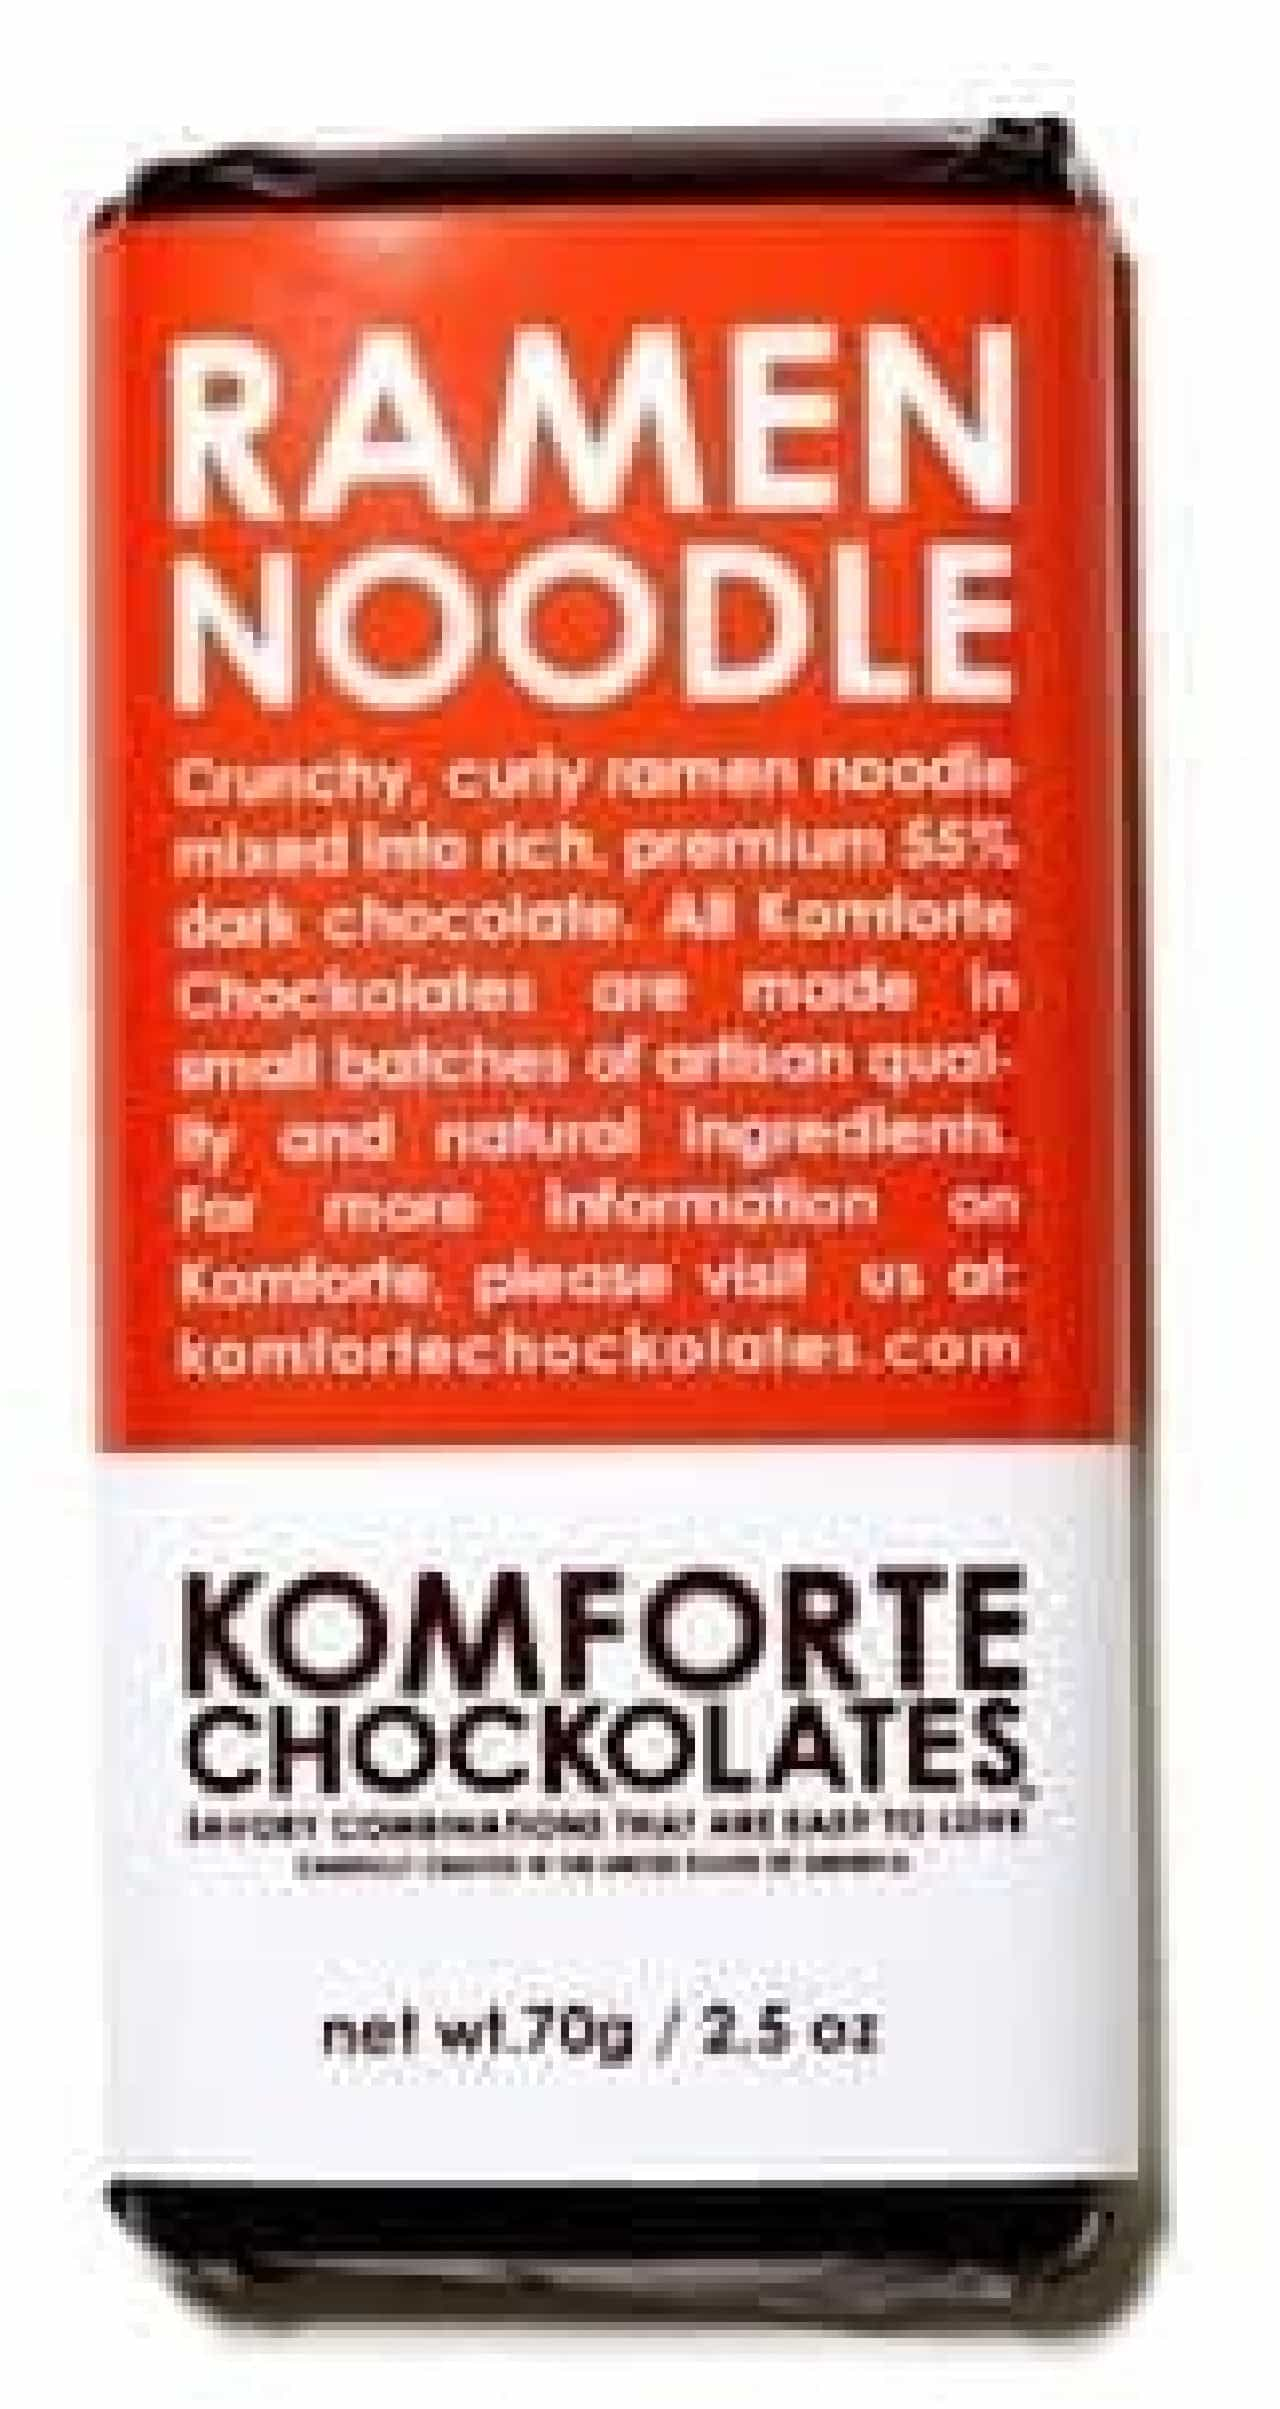 Komforte Chockolates の「Ramen Noodle」チョコバー